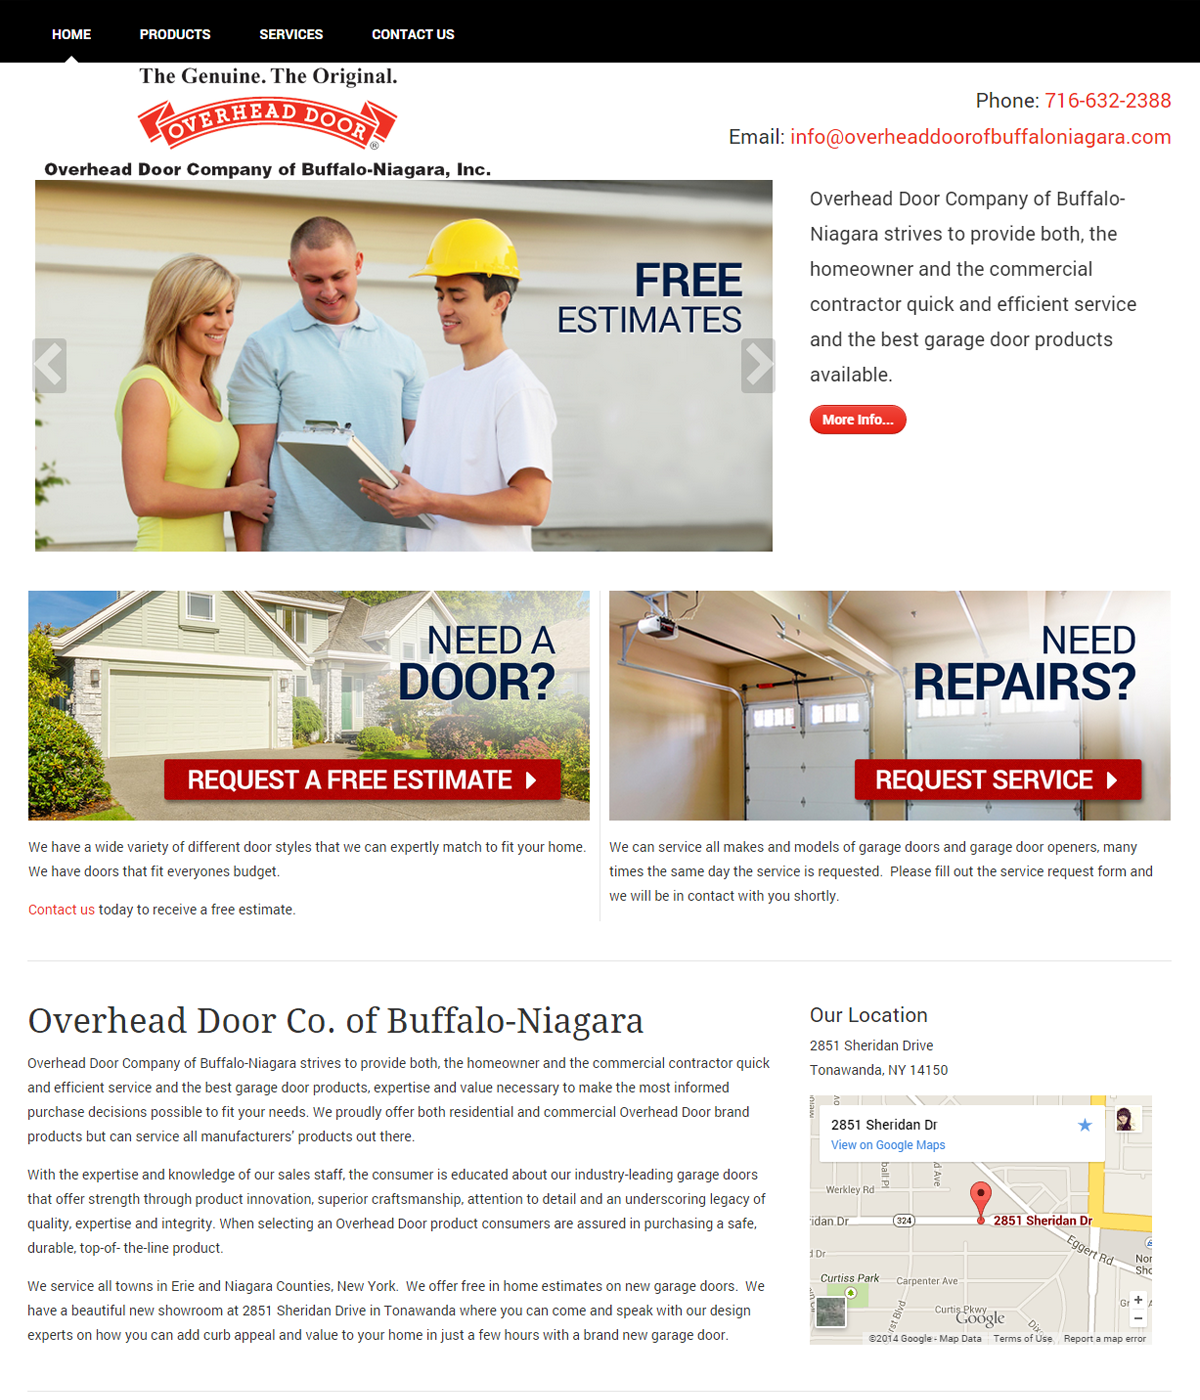 Overhead Door Company of Buffalo-Niagara, Inc.